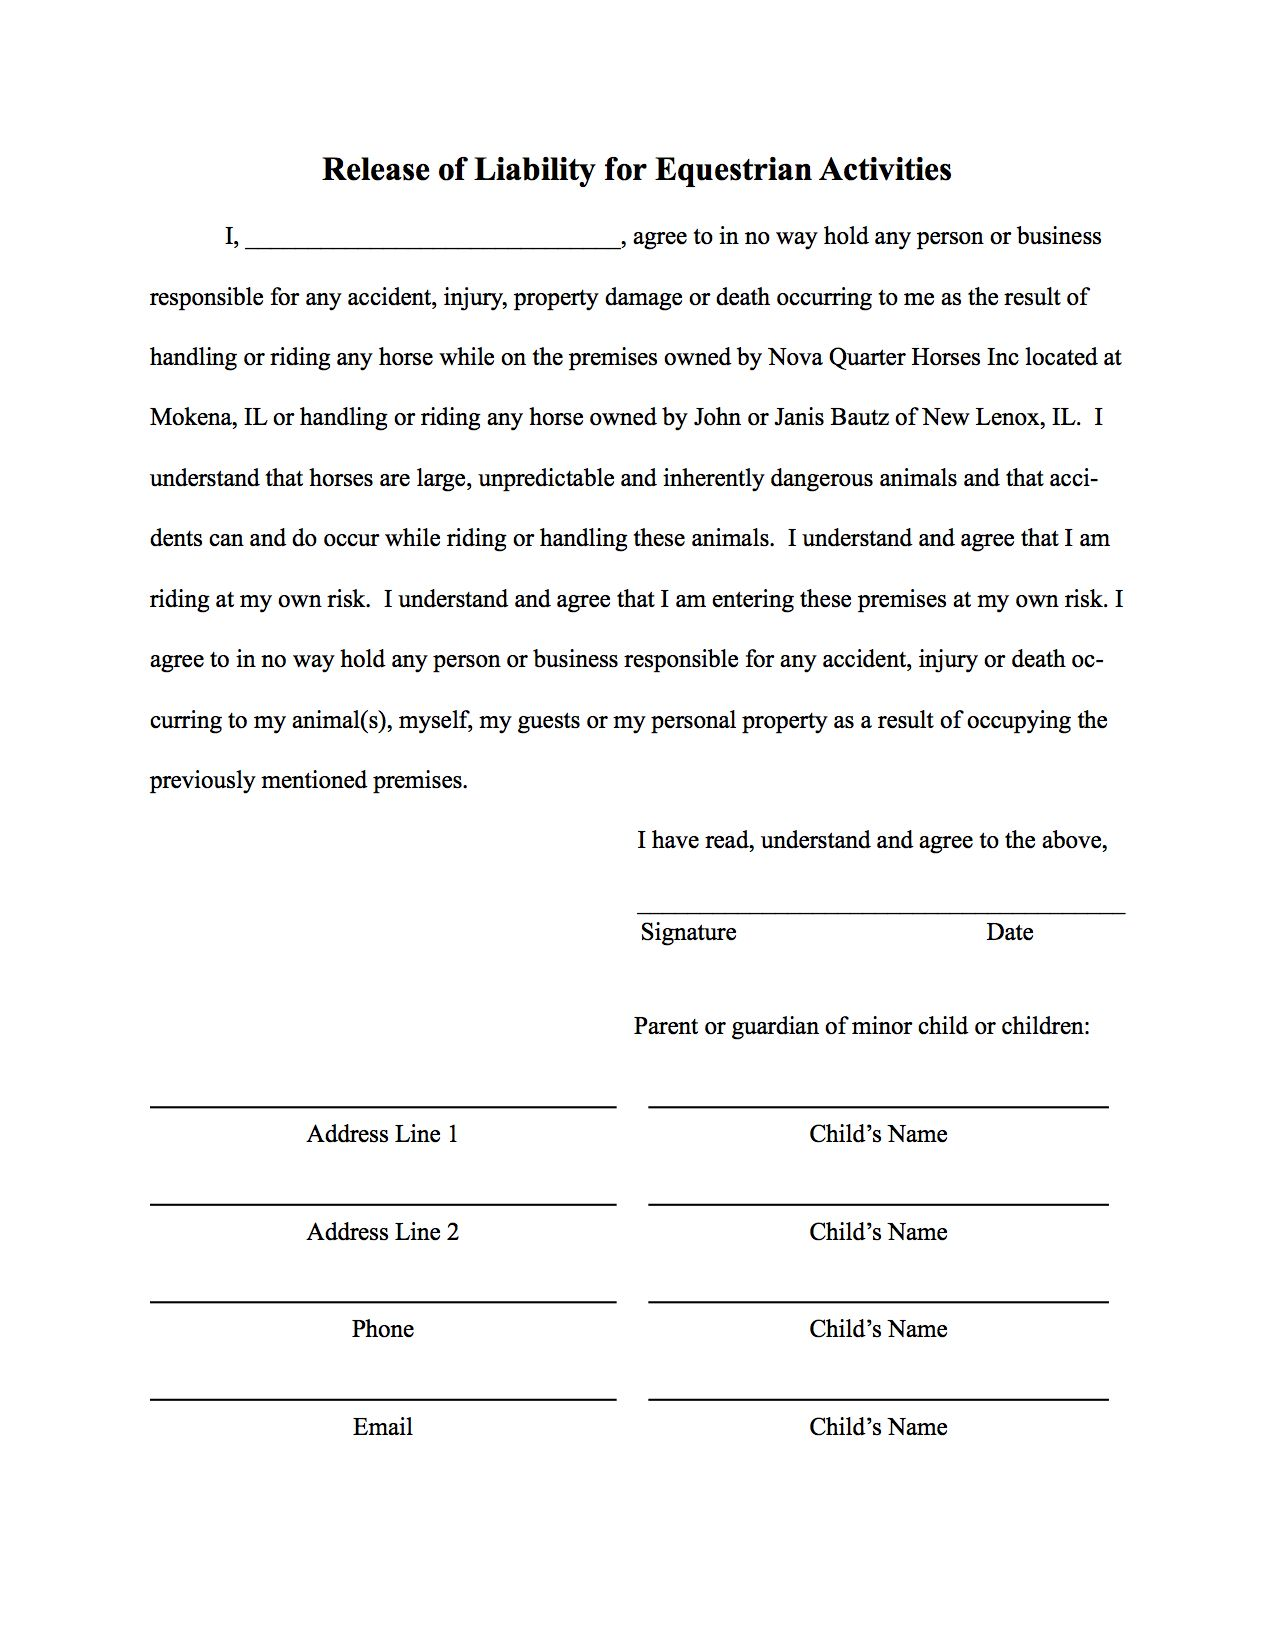 Good Liability Waiver Form Template Release Of Liability Form Waiver Of Liability  Template With Sample, Liability Waiver Template Free Word Templates  Liability, ... Inside Free Printable Liability Release Form